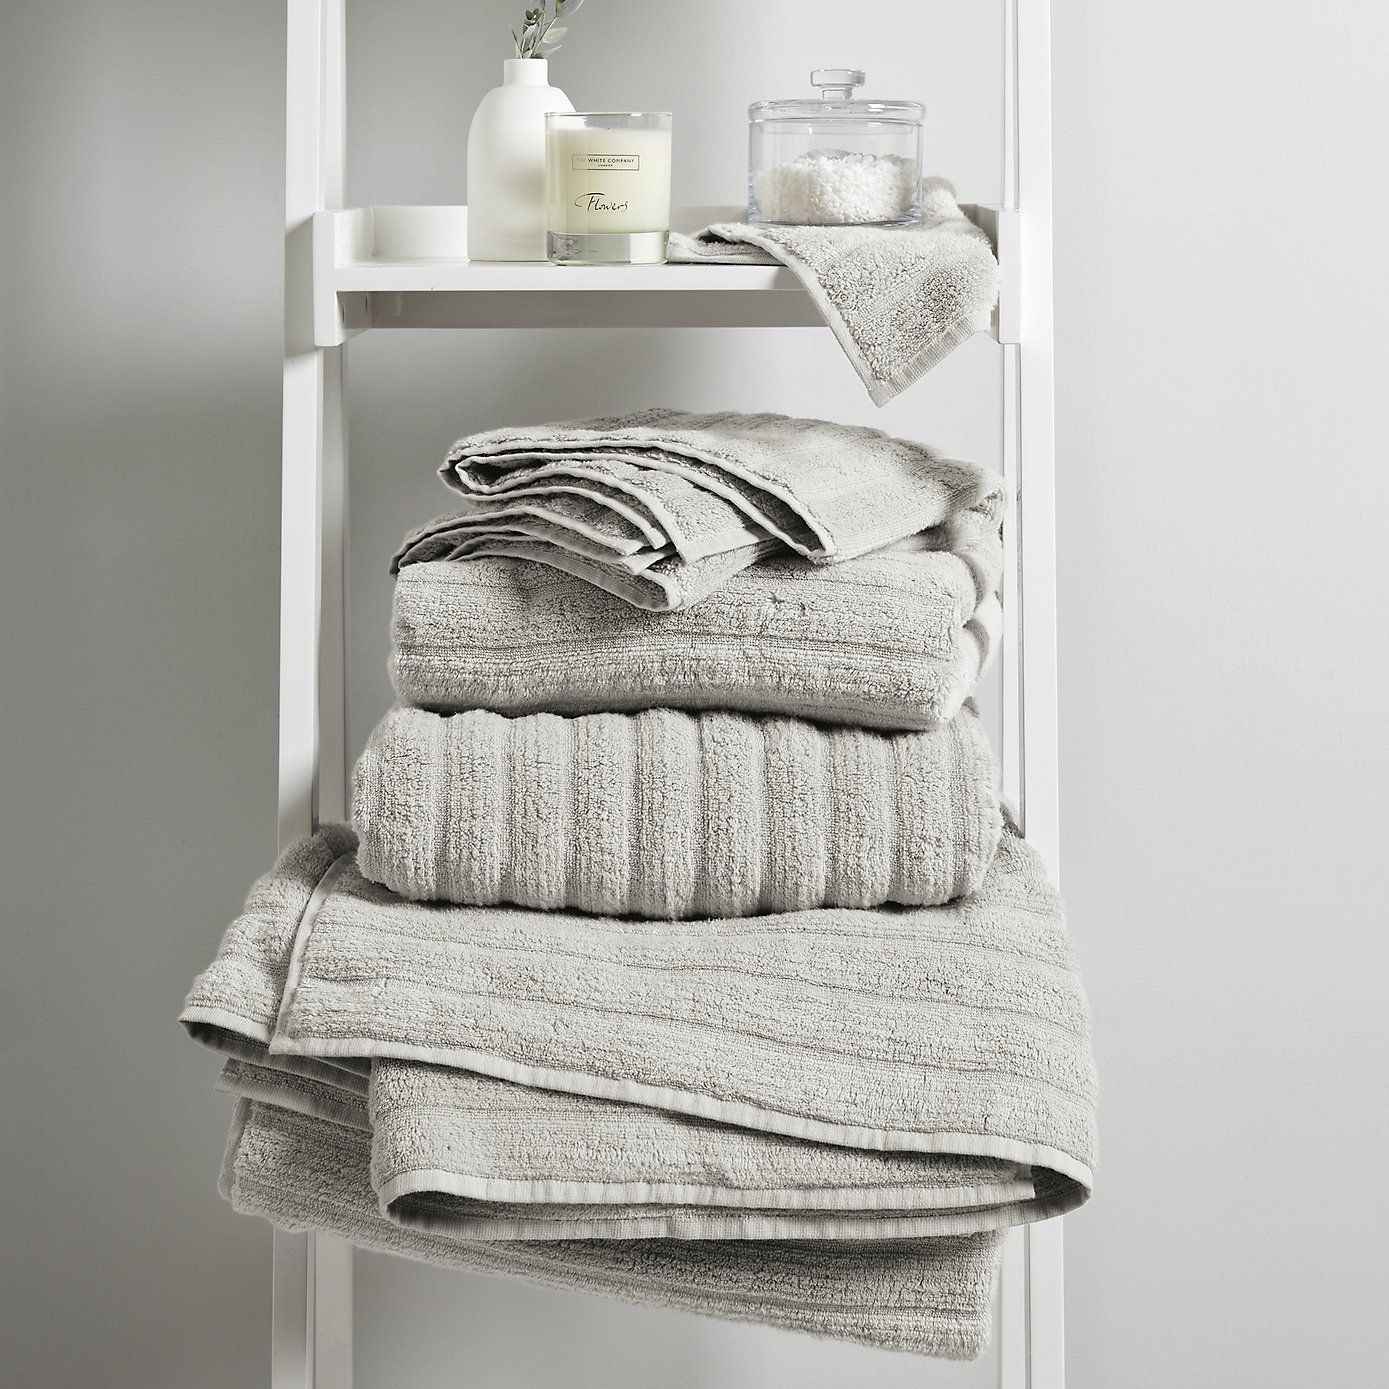 Hydrocotton Bath Towels Stunning Hydrocotton Towels  White Company Towels And Bungalow 2018